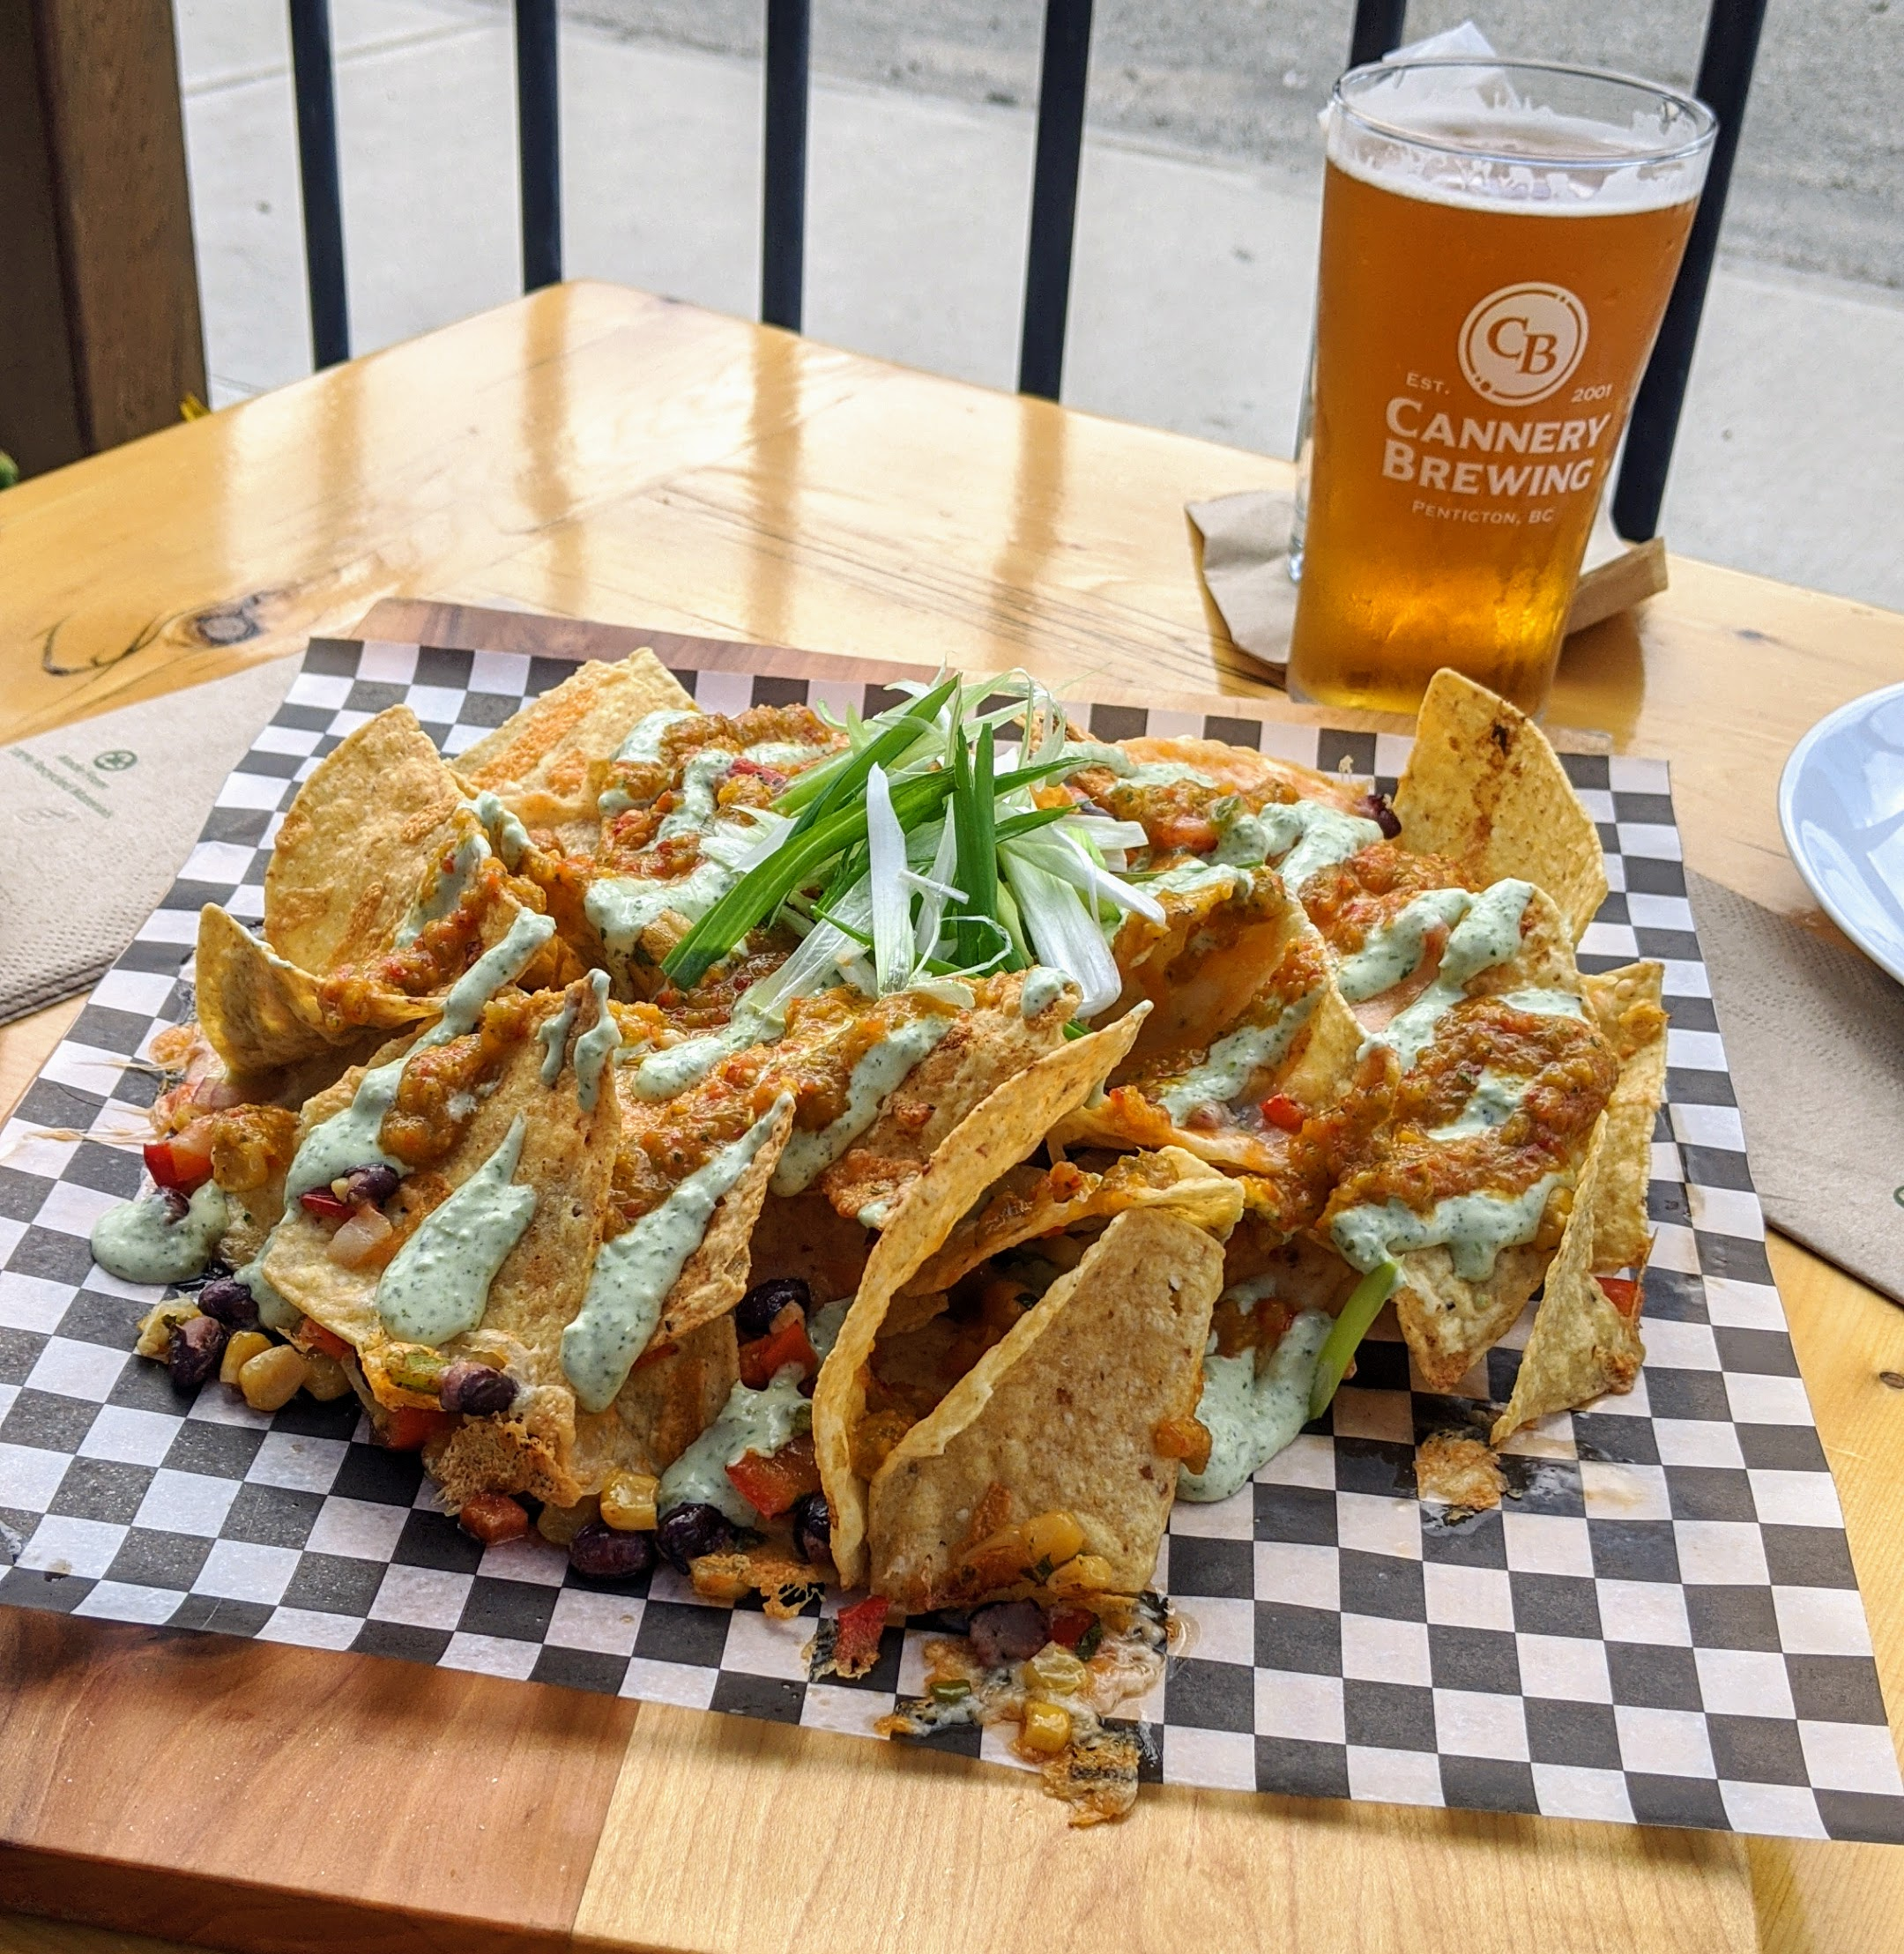 Nachos at Cannery Brewing